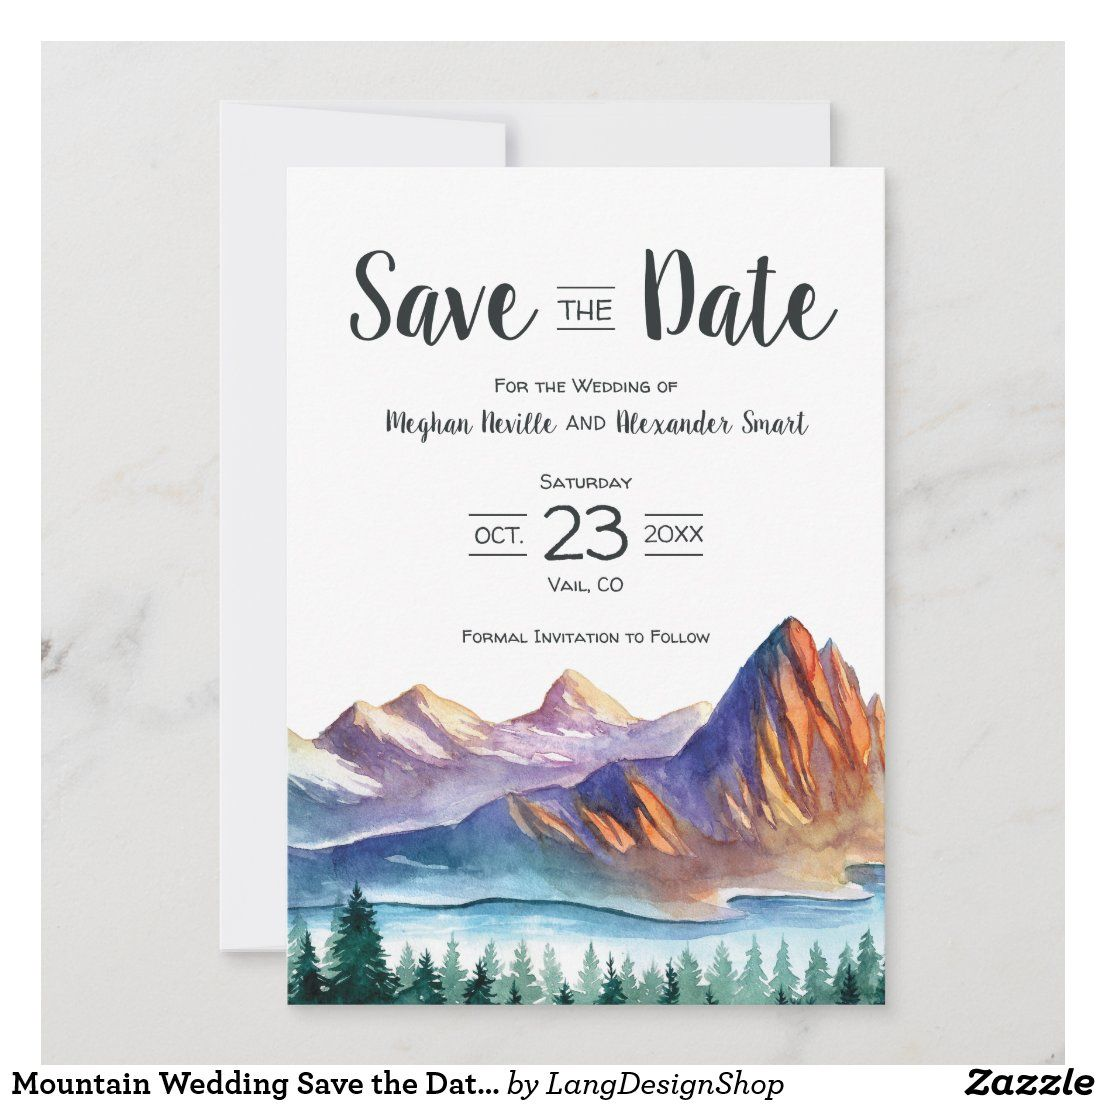 Mountain Wedding Save the Date with lake & forest | Zazzle.com in ...